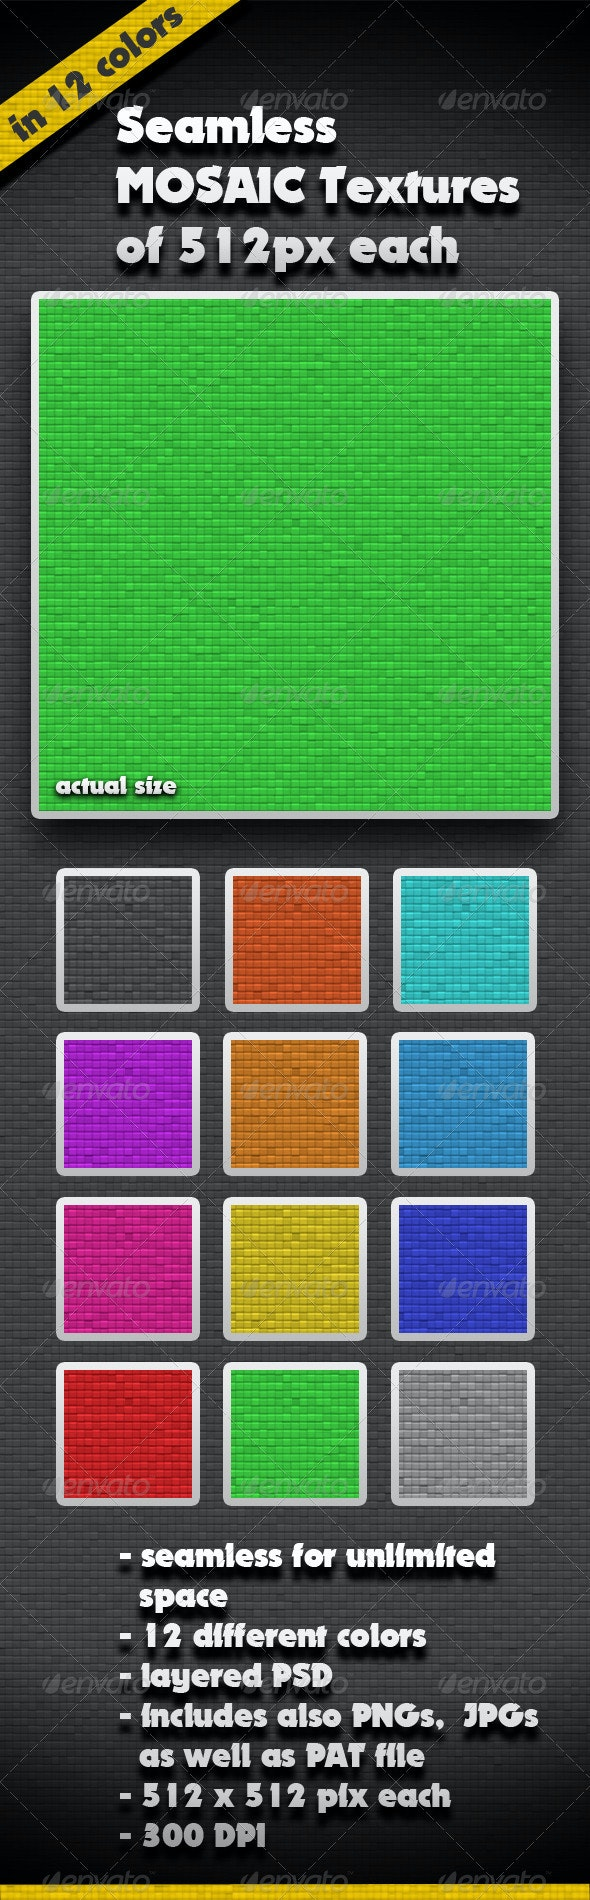 12 Different Color Mosaic Seamless Textures - Miscellaneous Textures